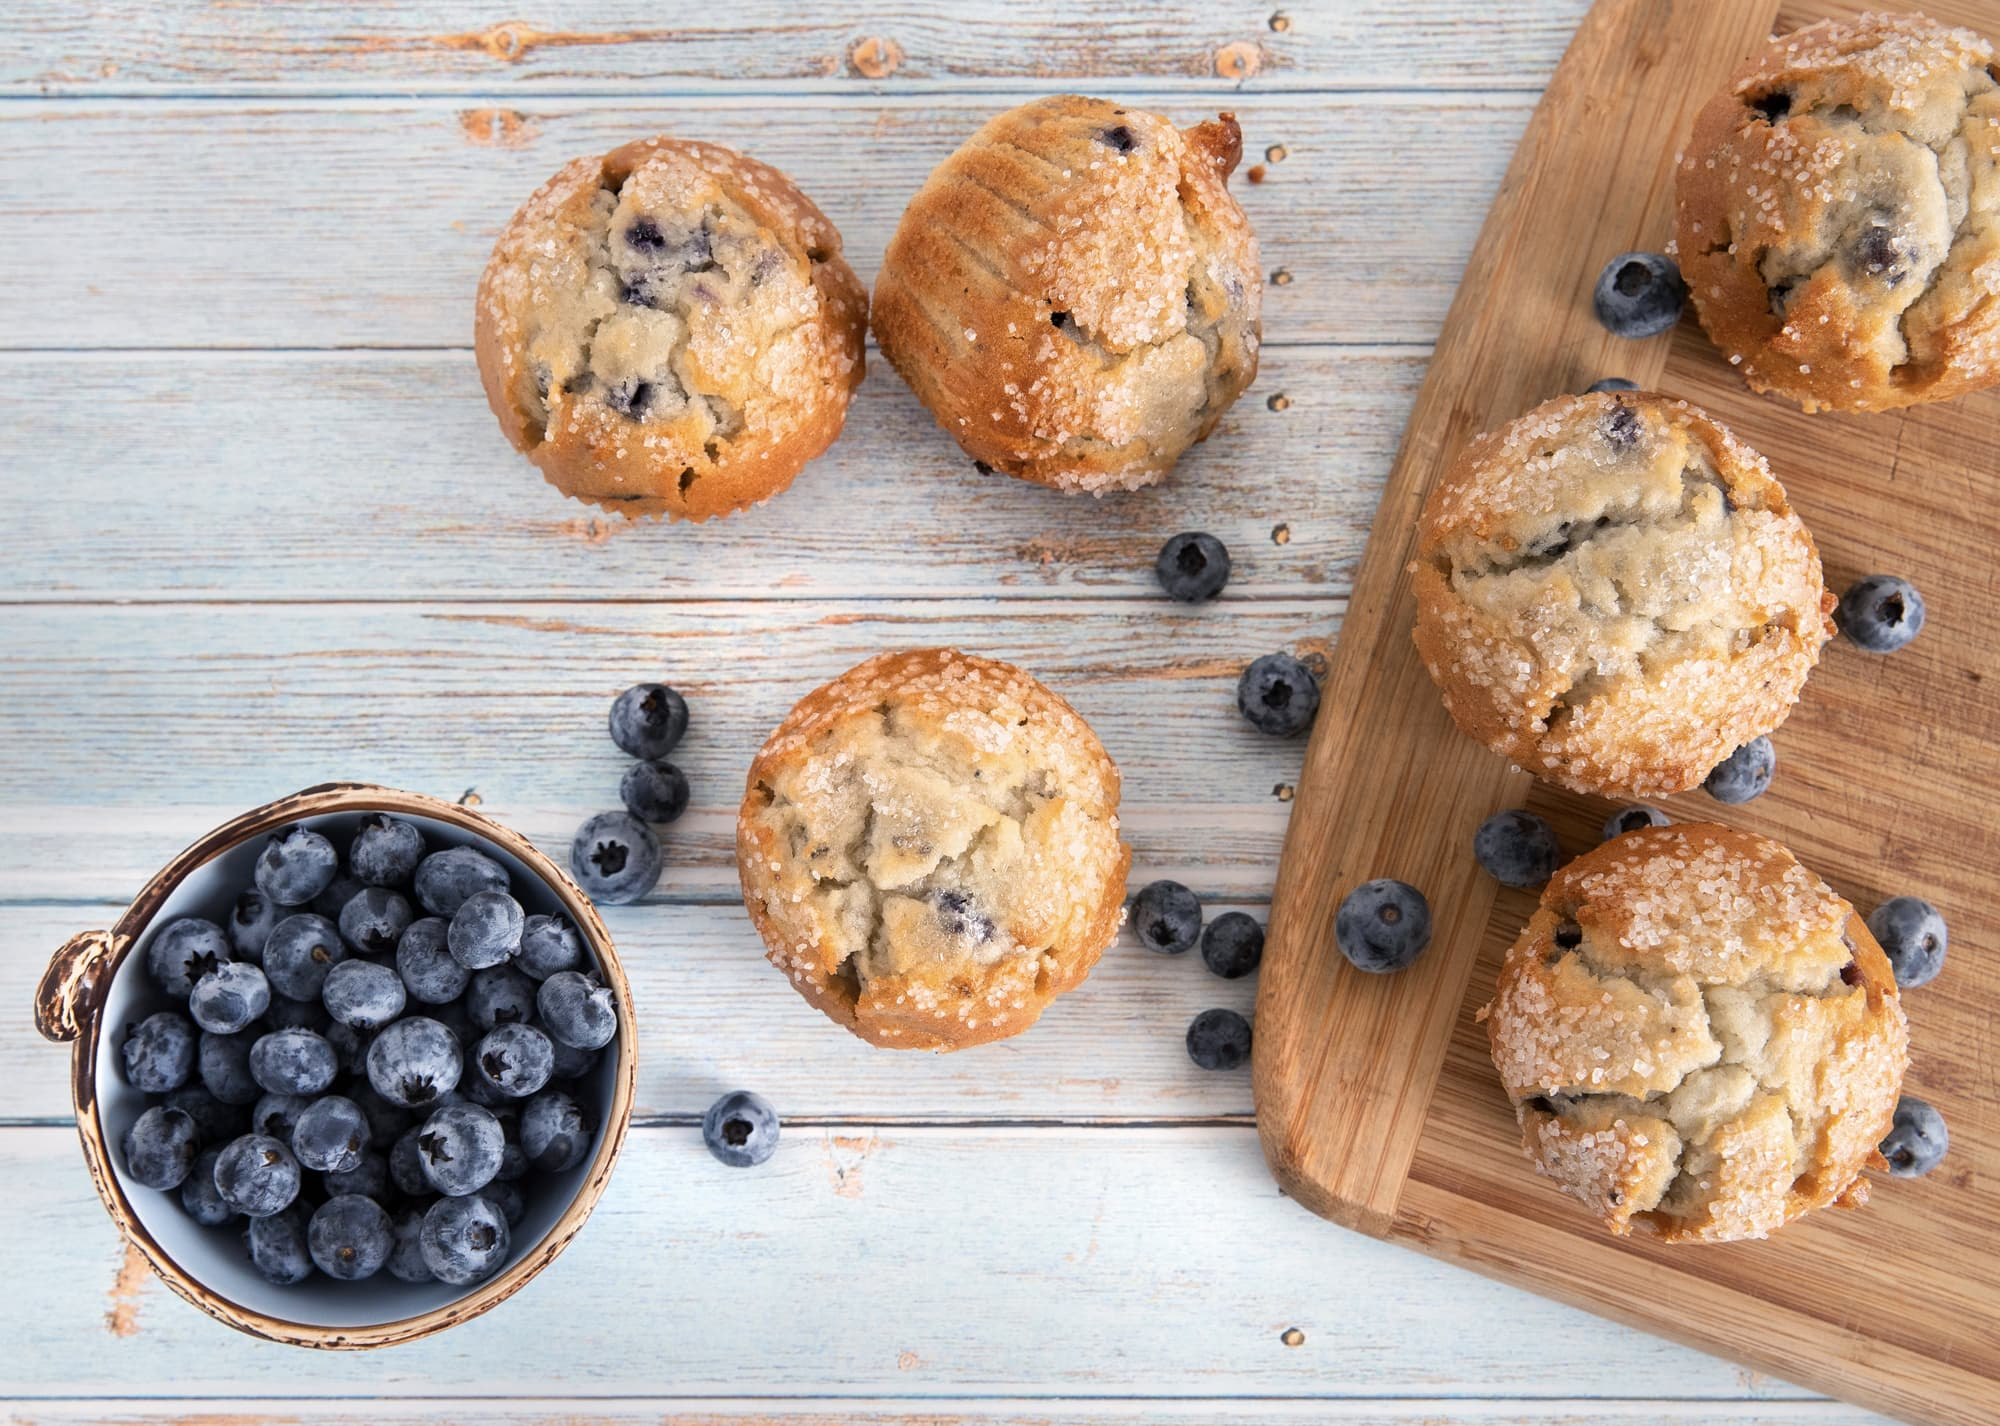 blueberry muffins on wood table